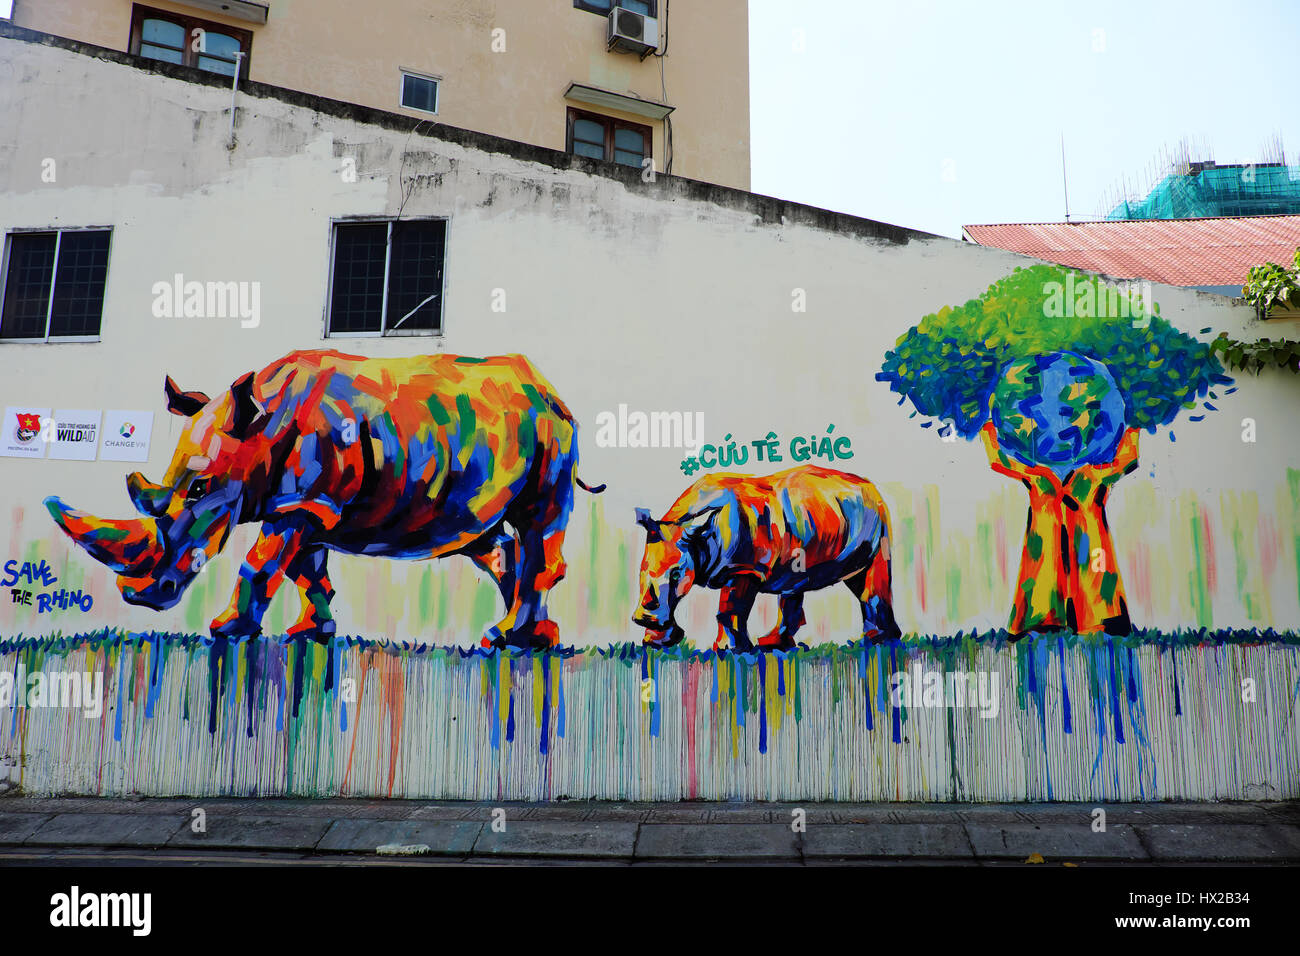 Campaign To Vietnamese Dont Use Rhino Horn By Graffiti Art Rhinoceros Painting On Wall Message People Protect Animal Meaningful Street Art